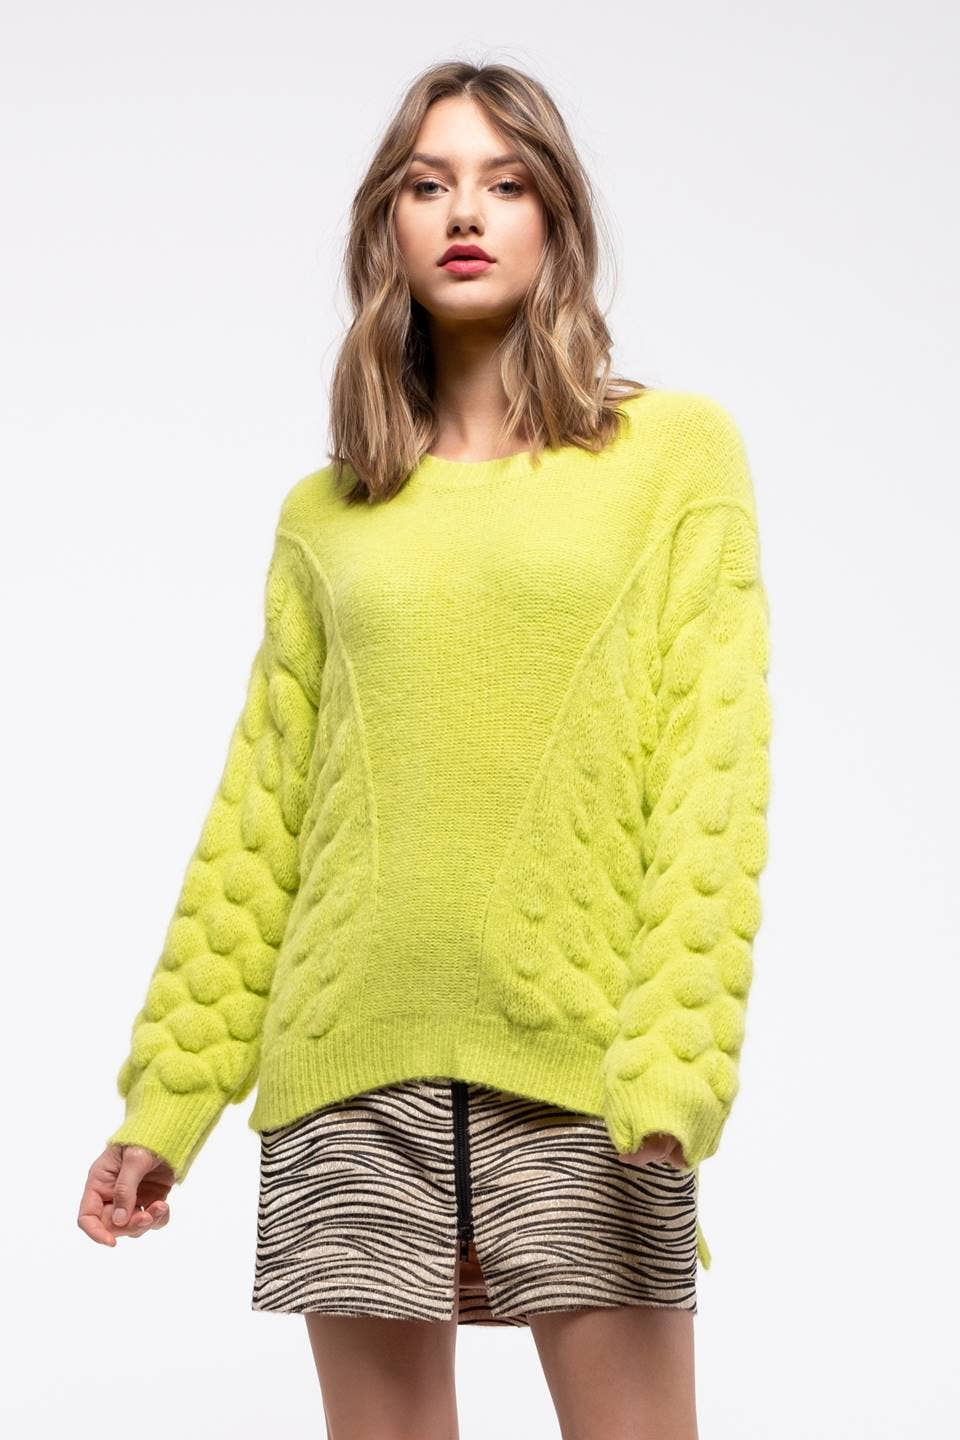 Textured Lime Green Sweater